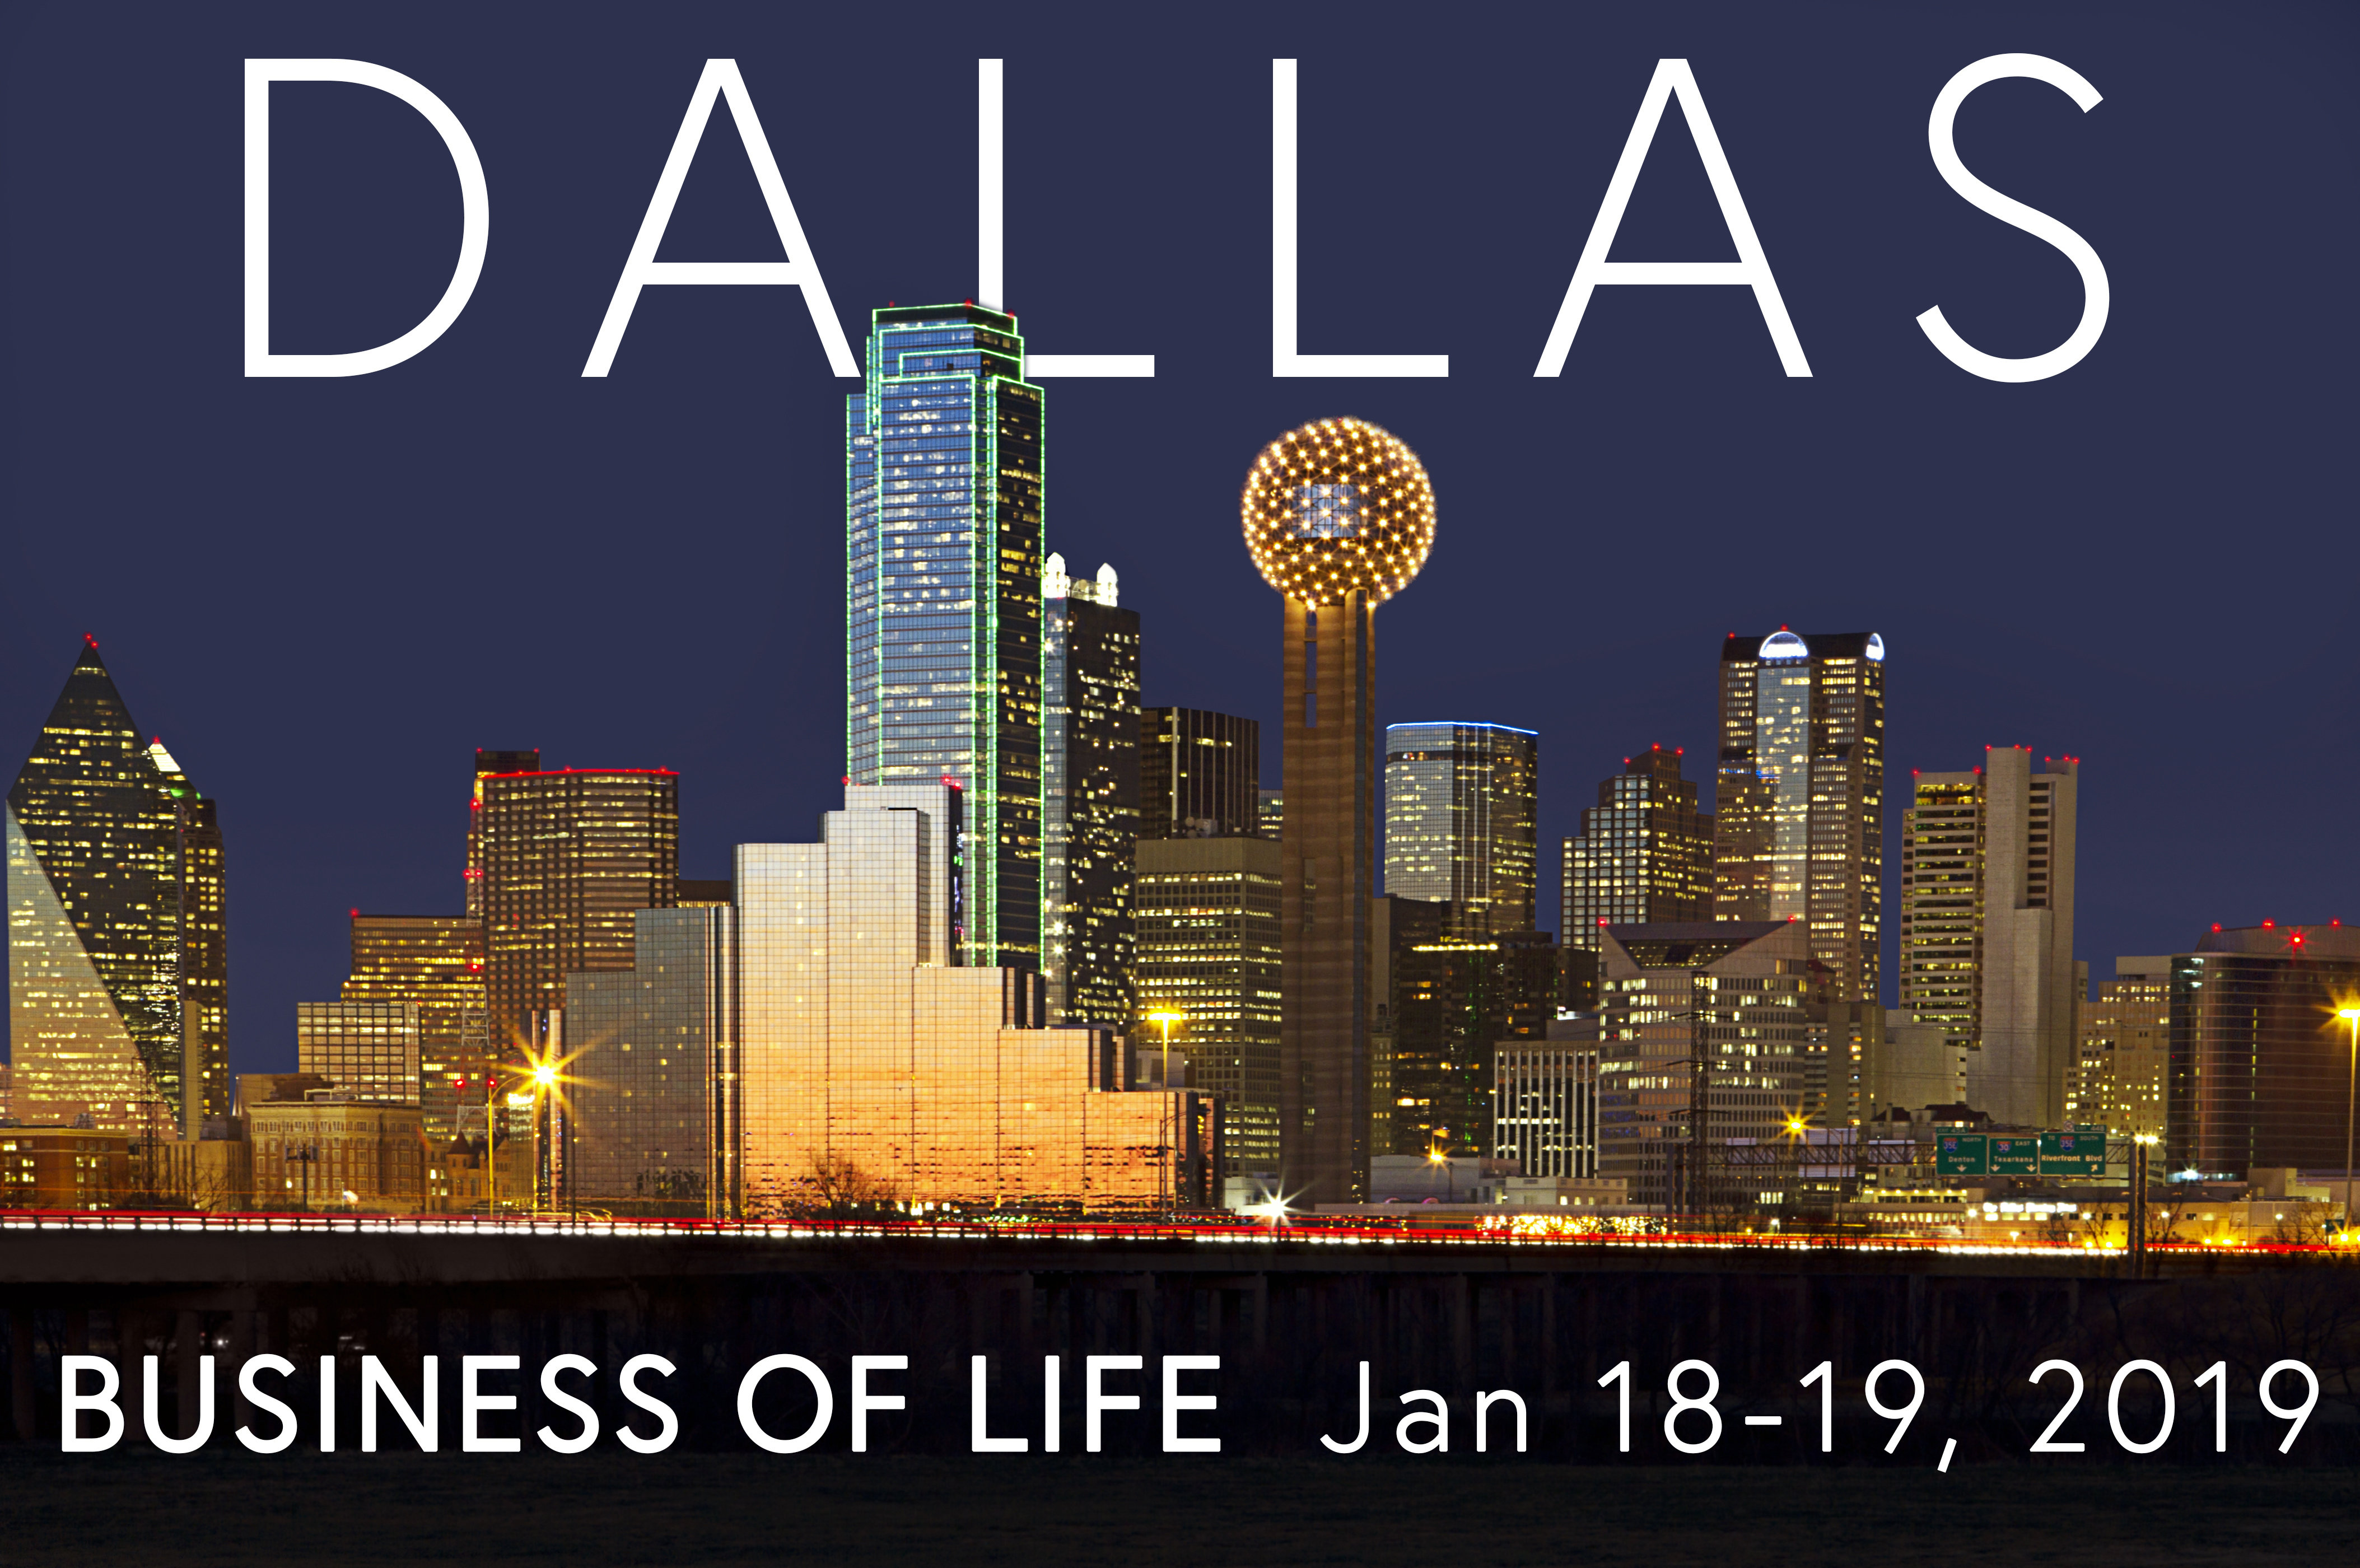 Business of Life - Dallas, TX - January 18-19 00039